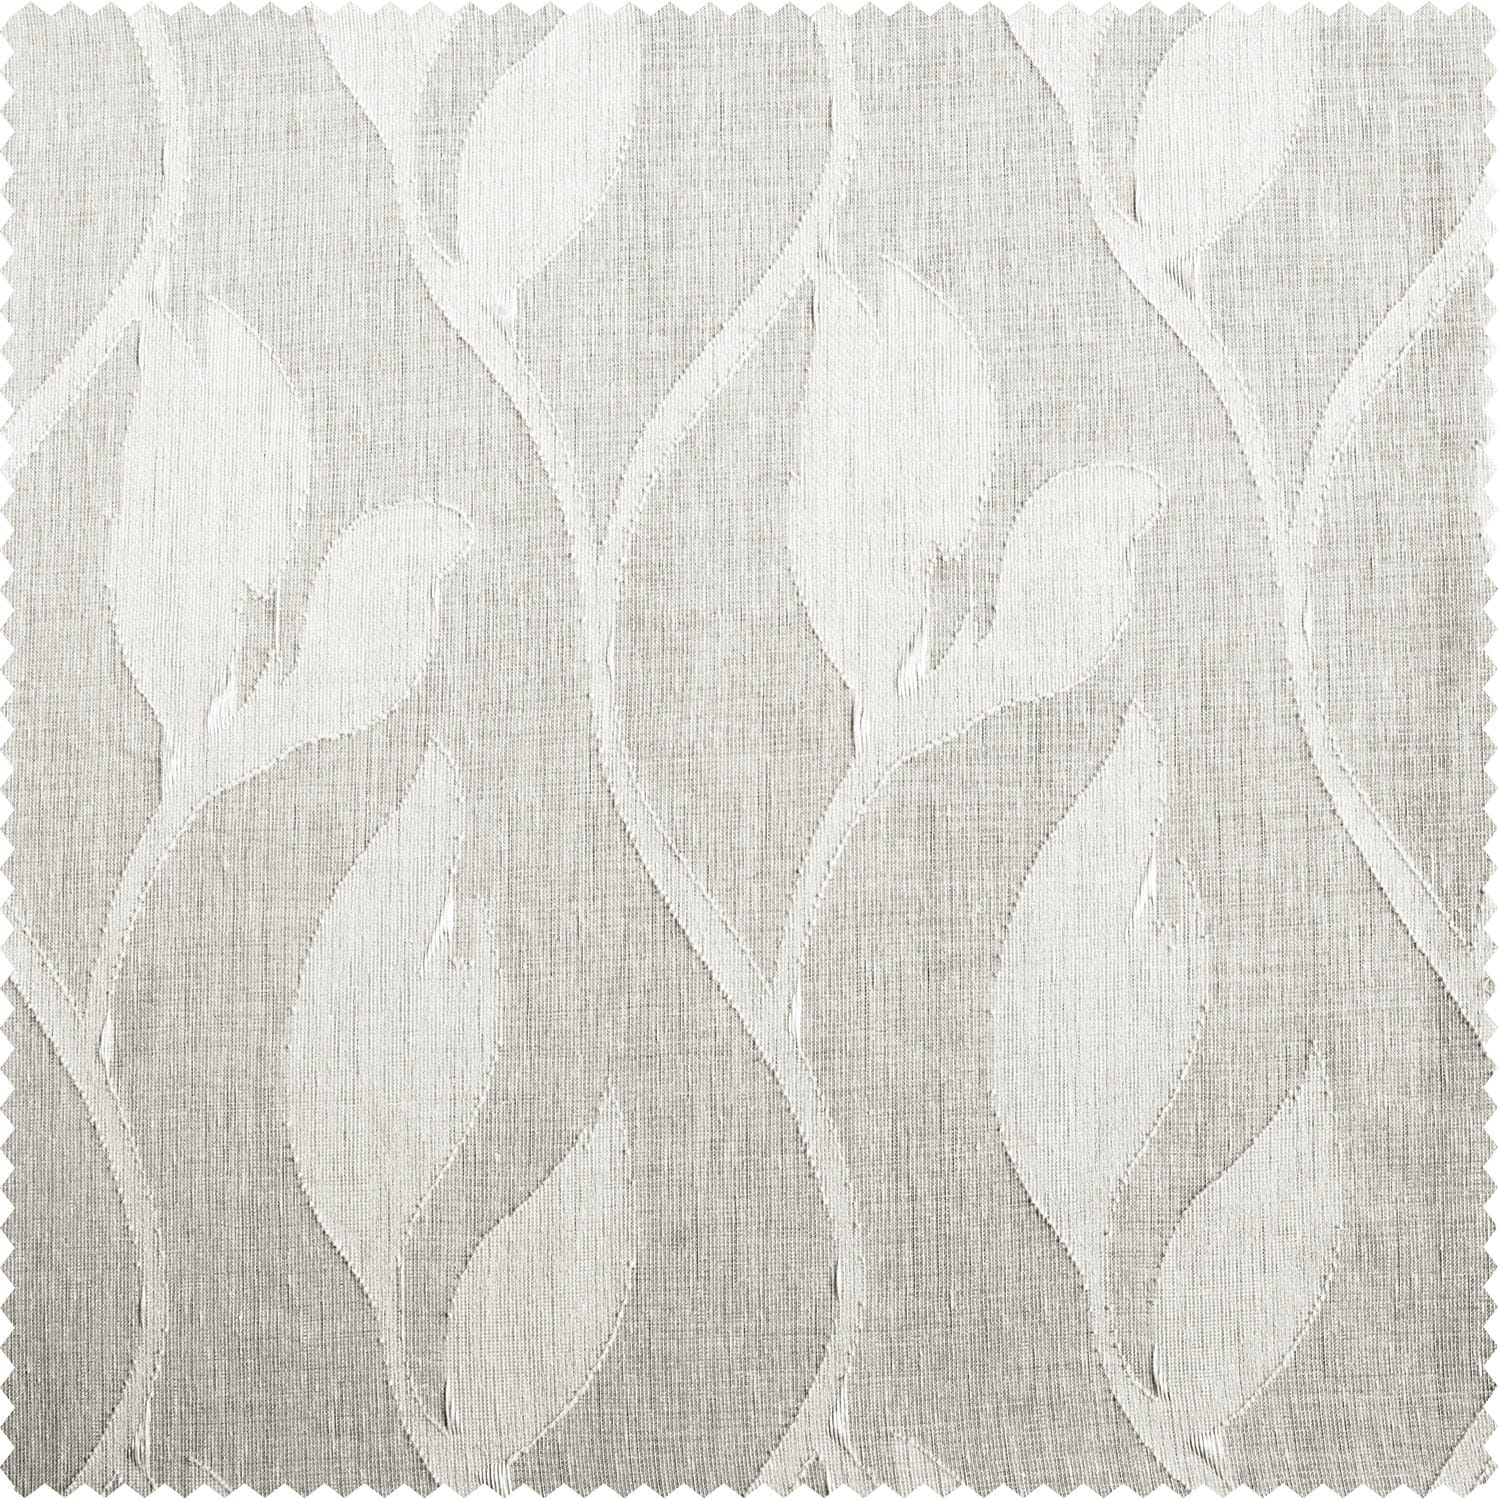 Avignon Vine Patterned Faux Linen Sheer Swatch